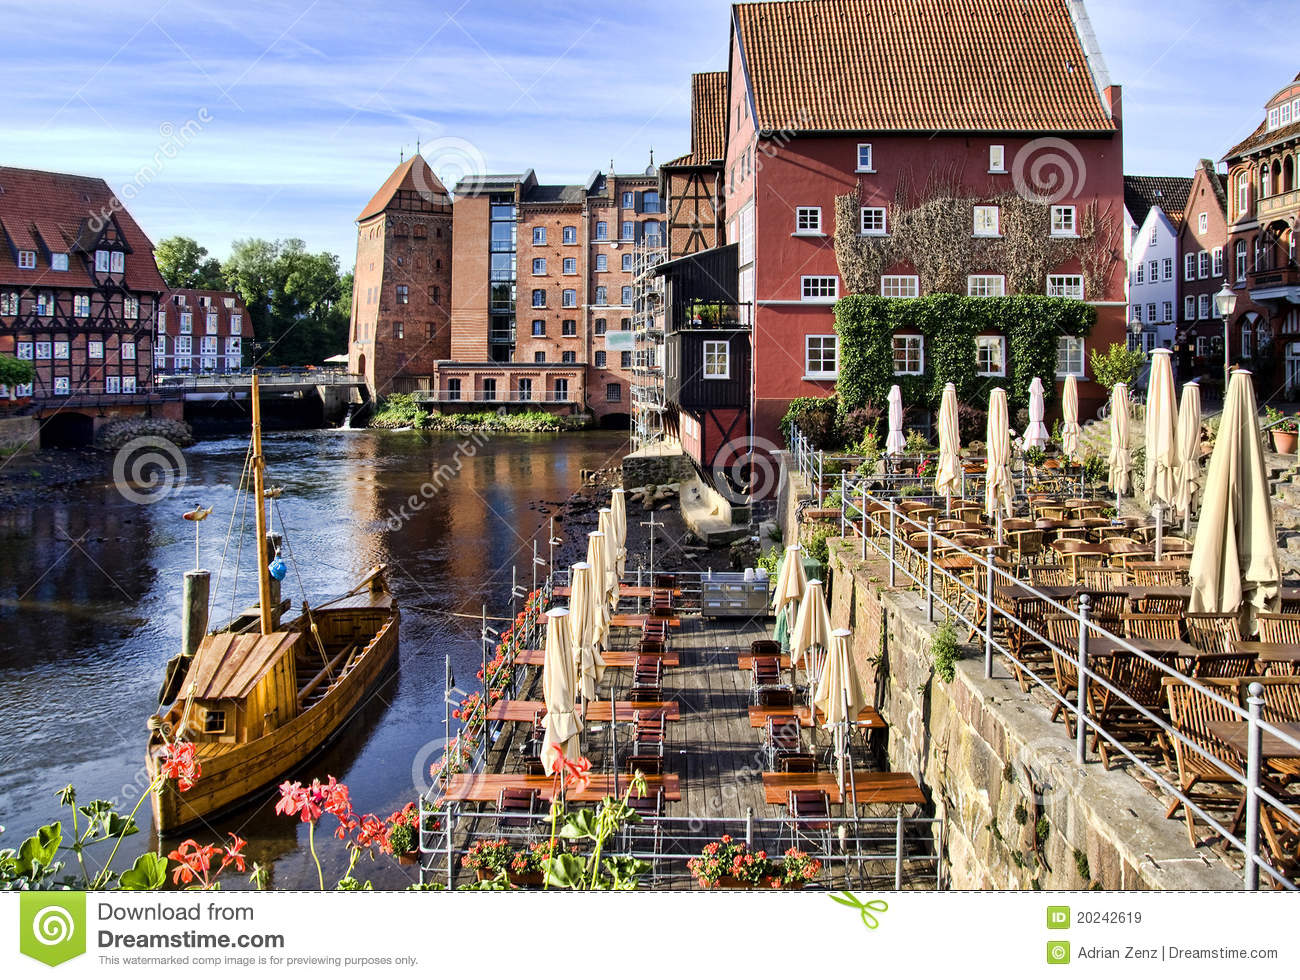 Historic town of Lueneburg, Germany